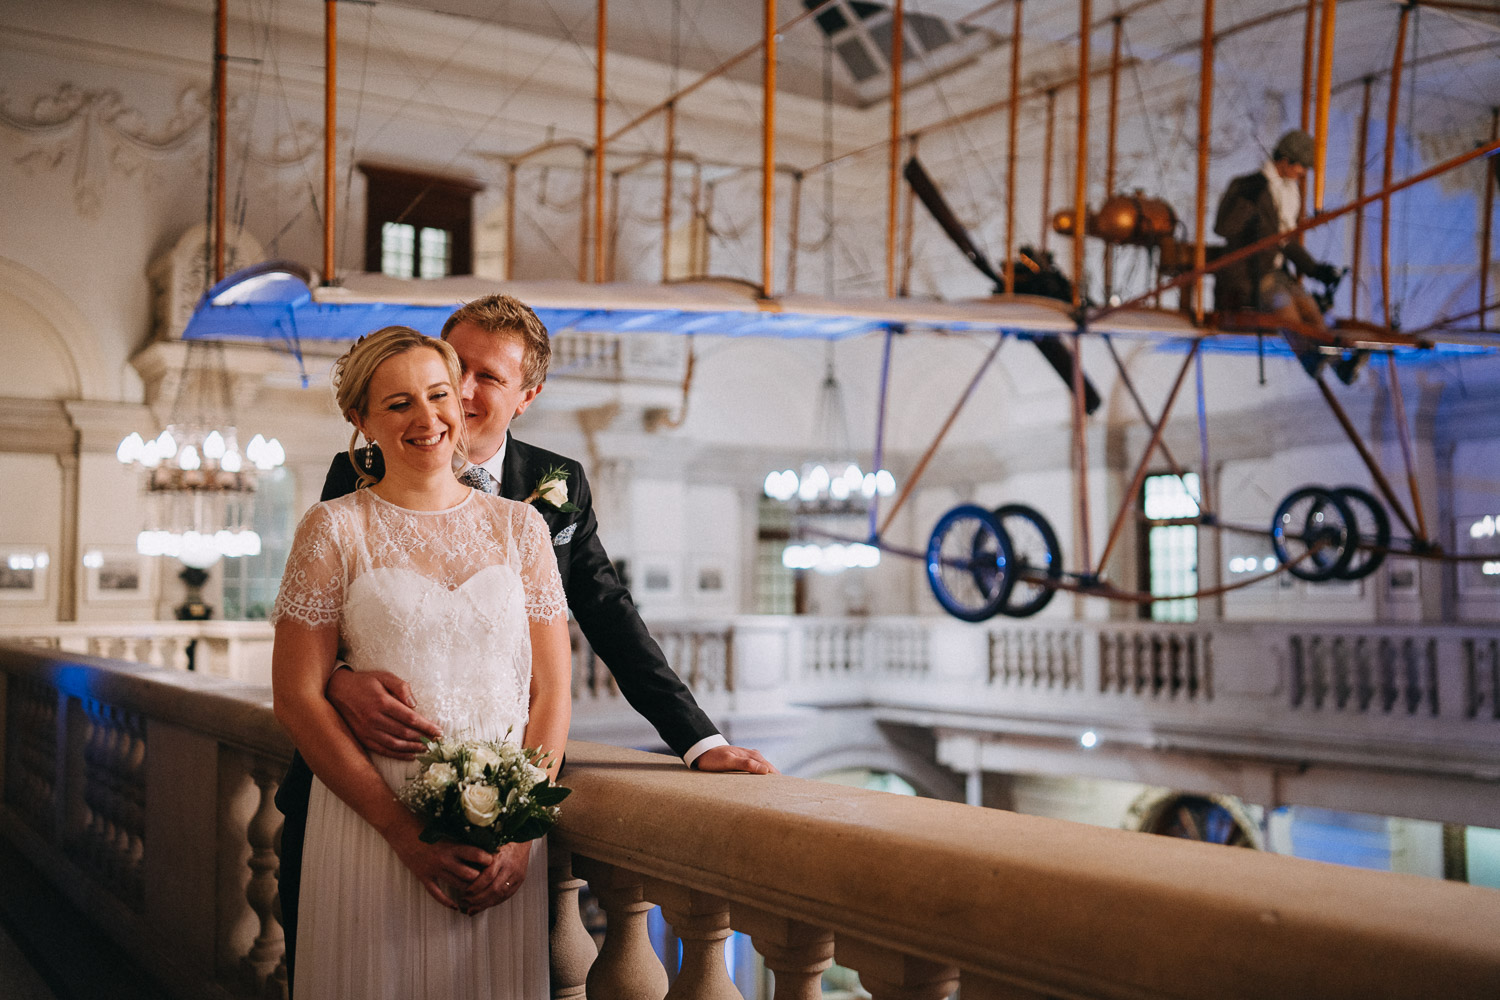 Bristol Wedding Photographer - Bristol Museum and Art Gallery